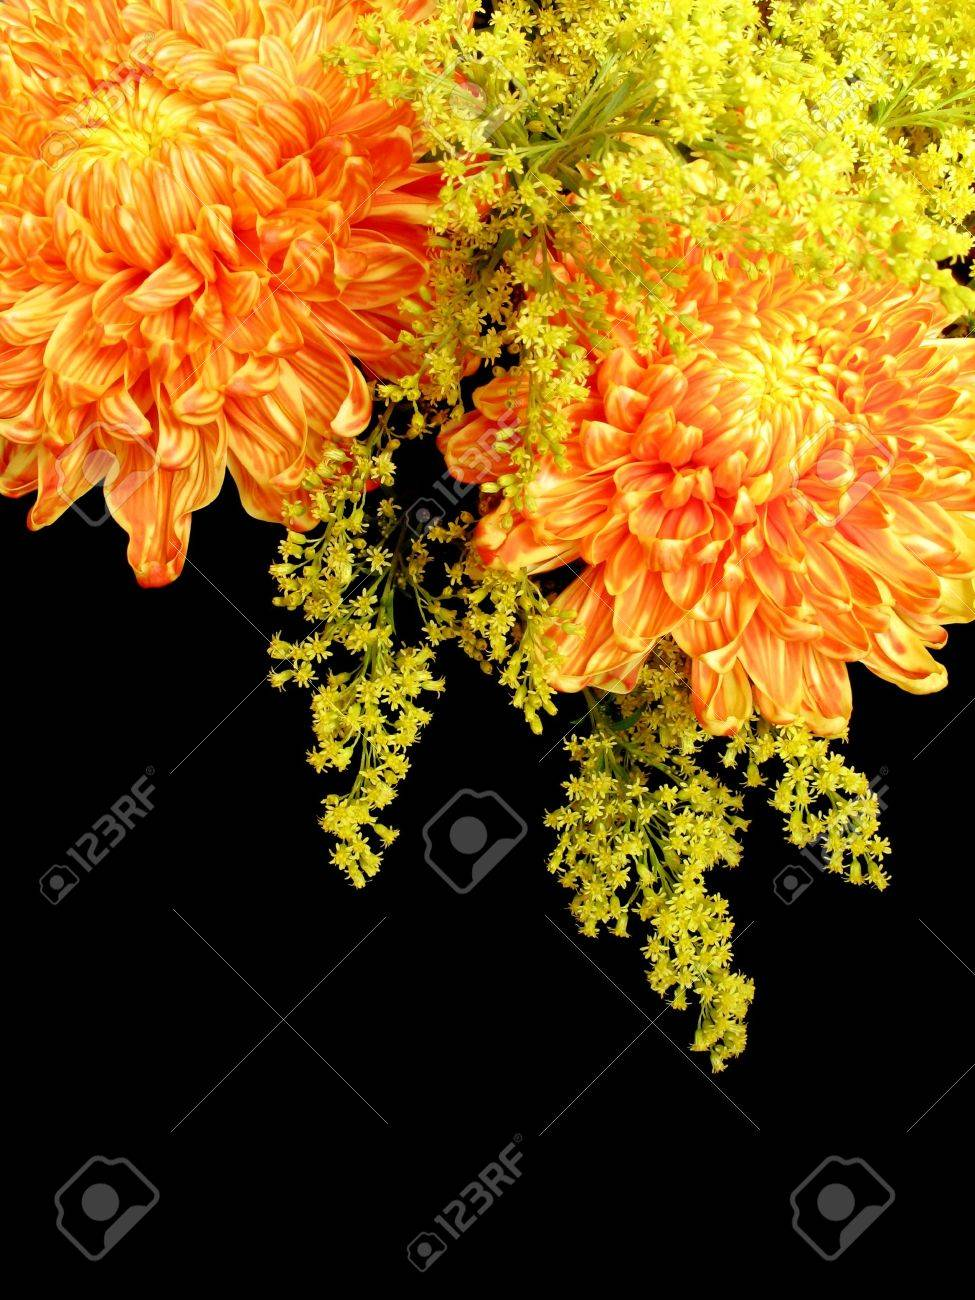 A Flower Arrangement Of Red Orange And Yellow Chrysanthemums